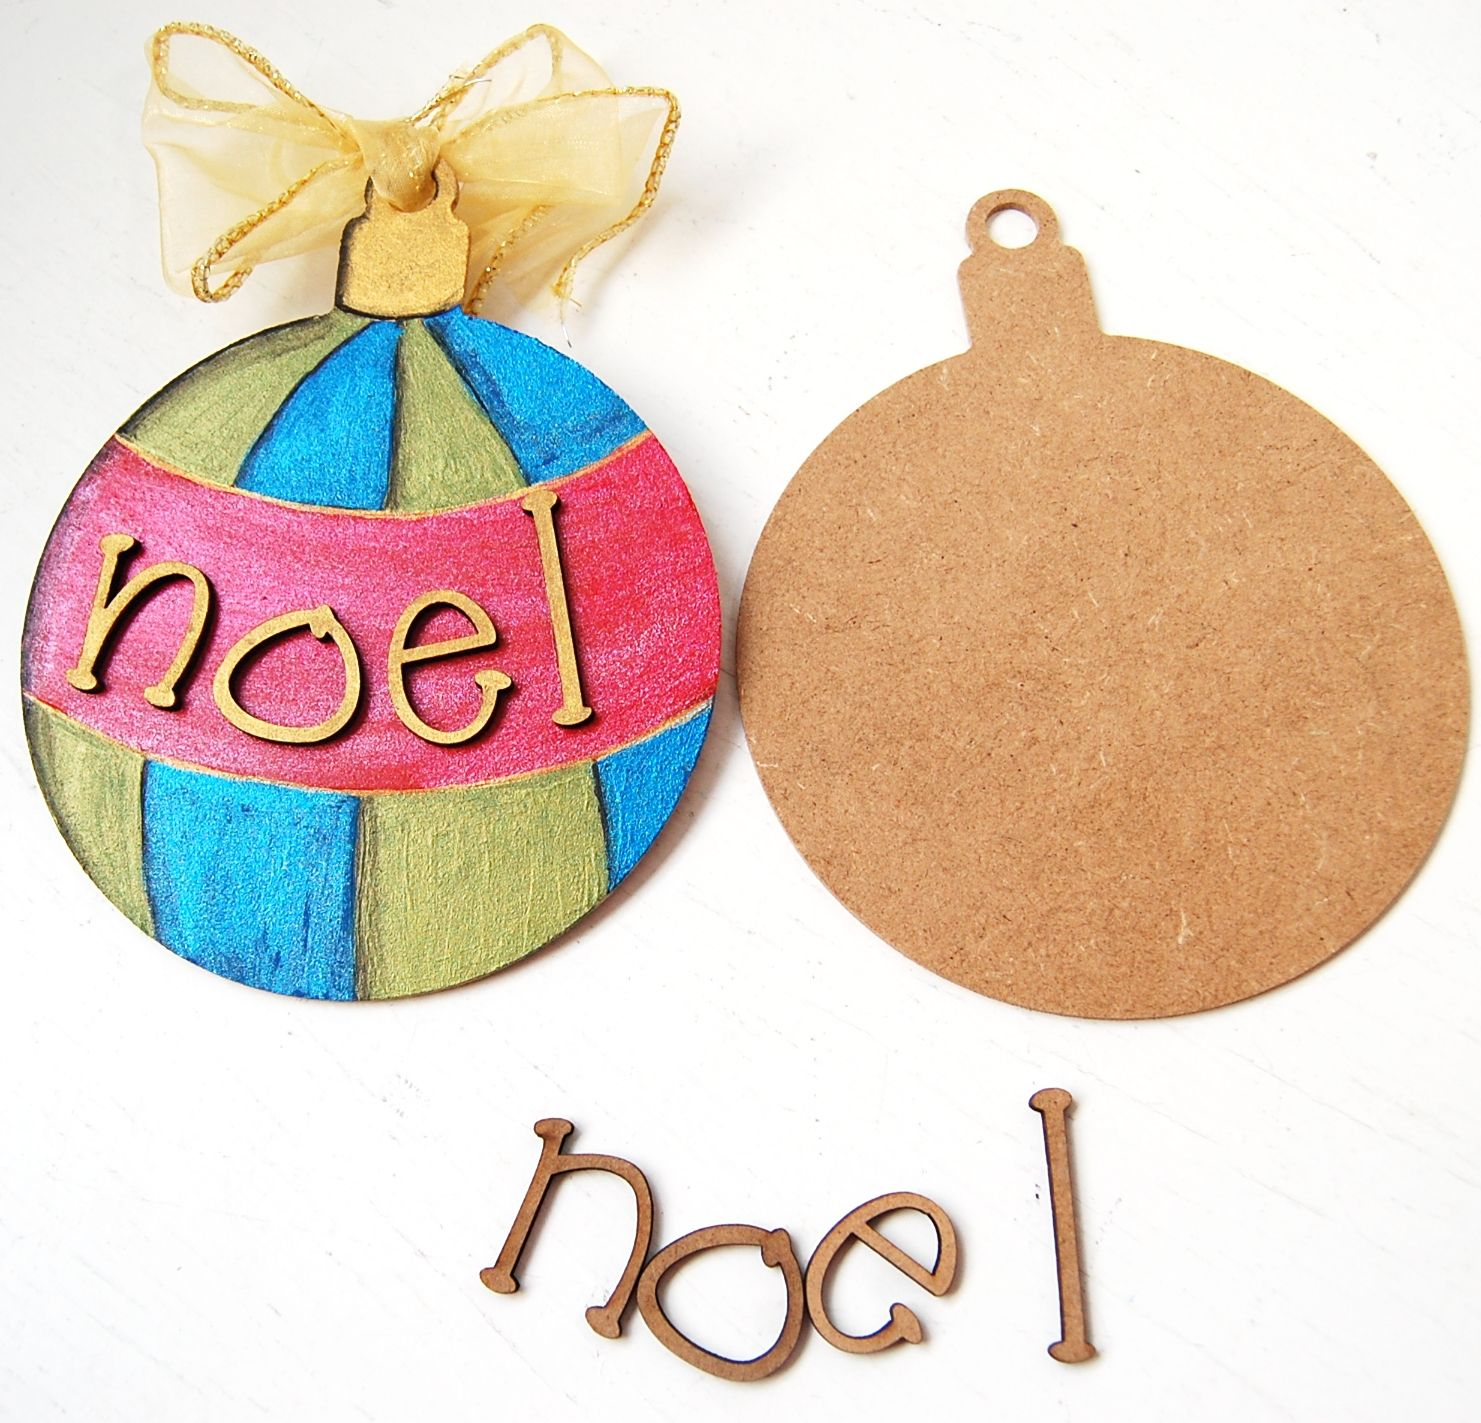 Painted wooden shapes for crafts - Country Love Crafts Small Wooden Craft Letters Stuck On Our Flat Wood Mdf Bauble Shape